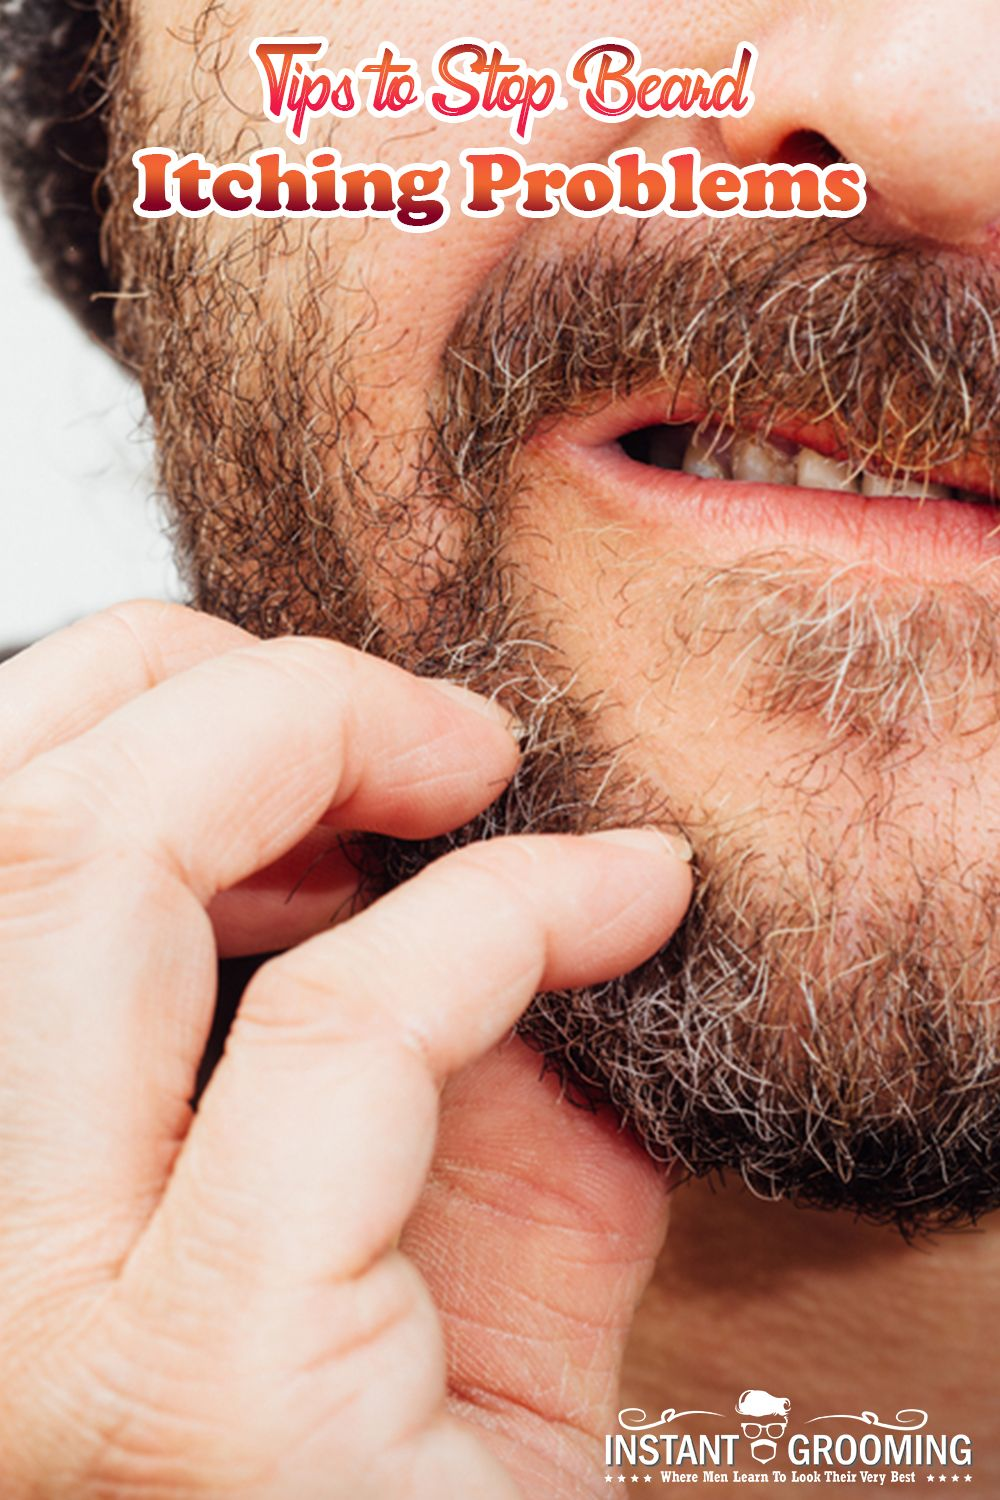 Tips To Stop Beard Itching Problems Instant Grooming Beard Itch Grow Beard Beard